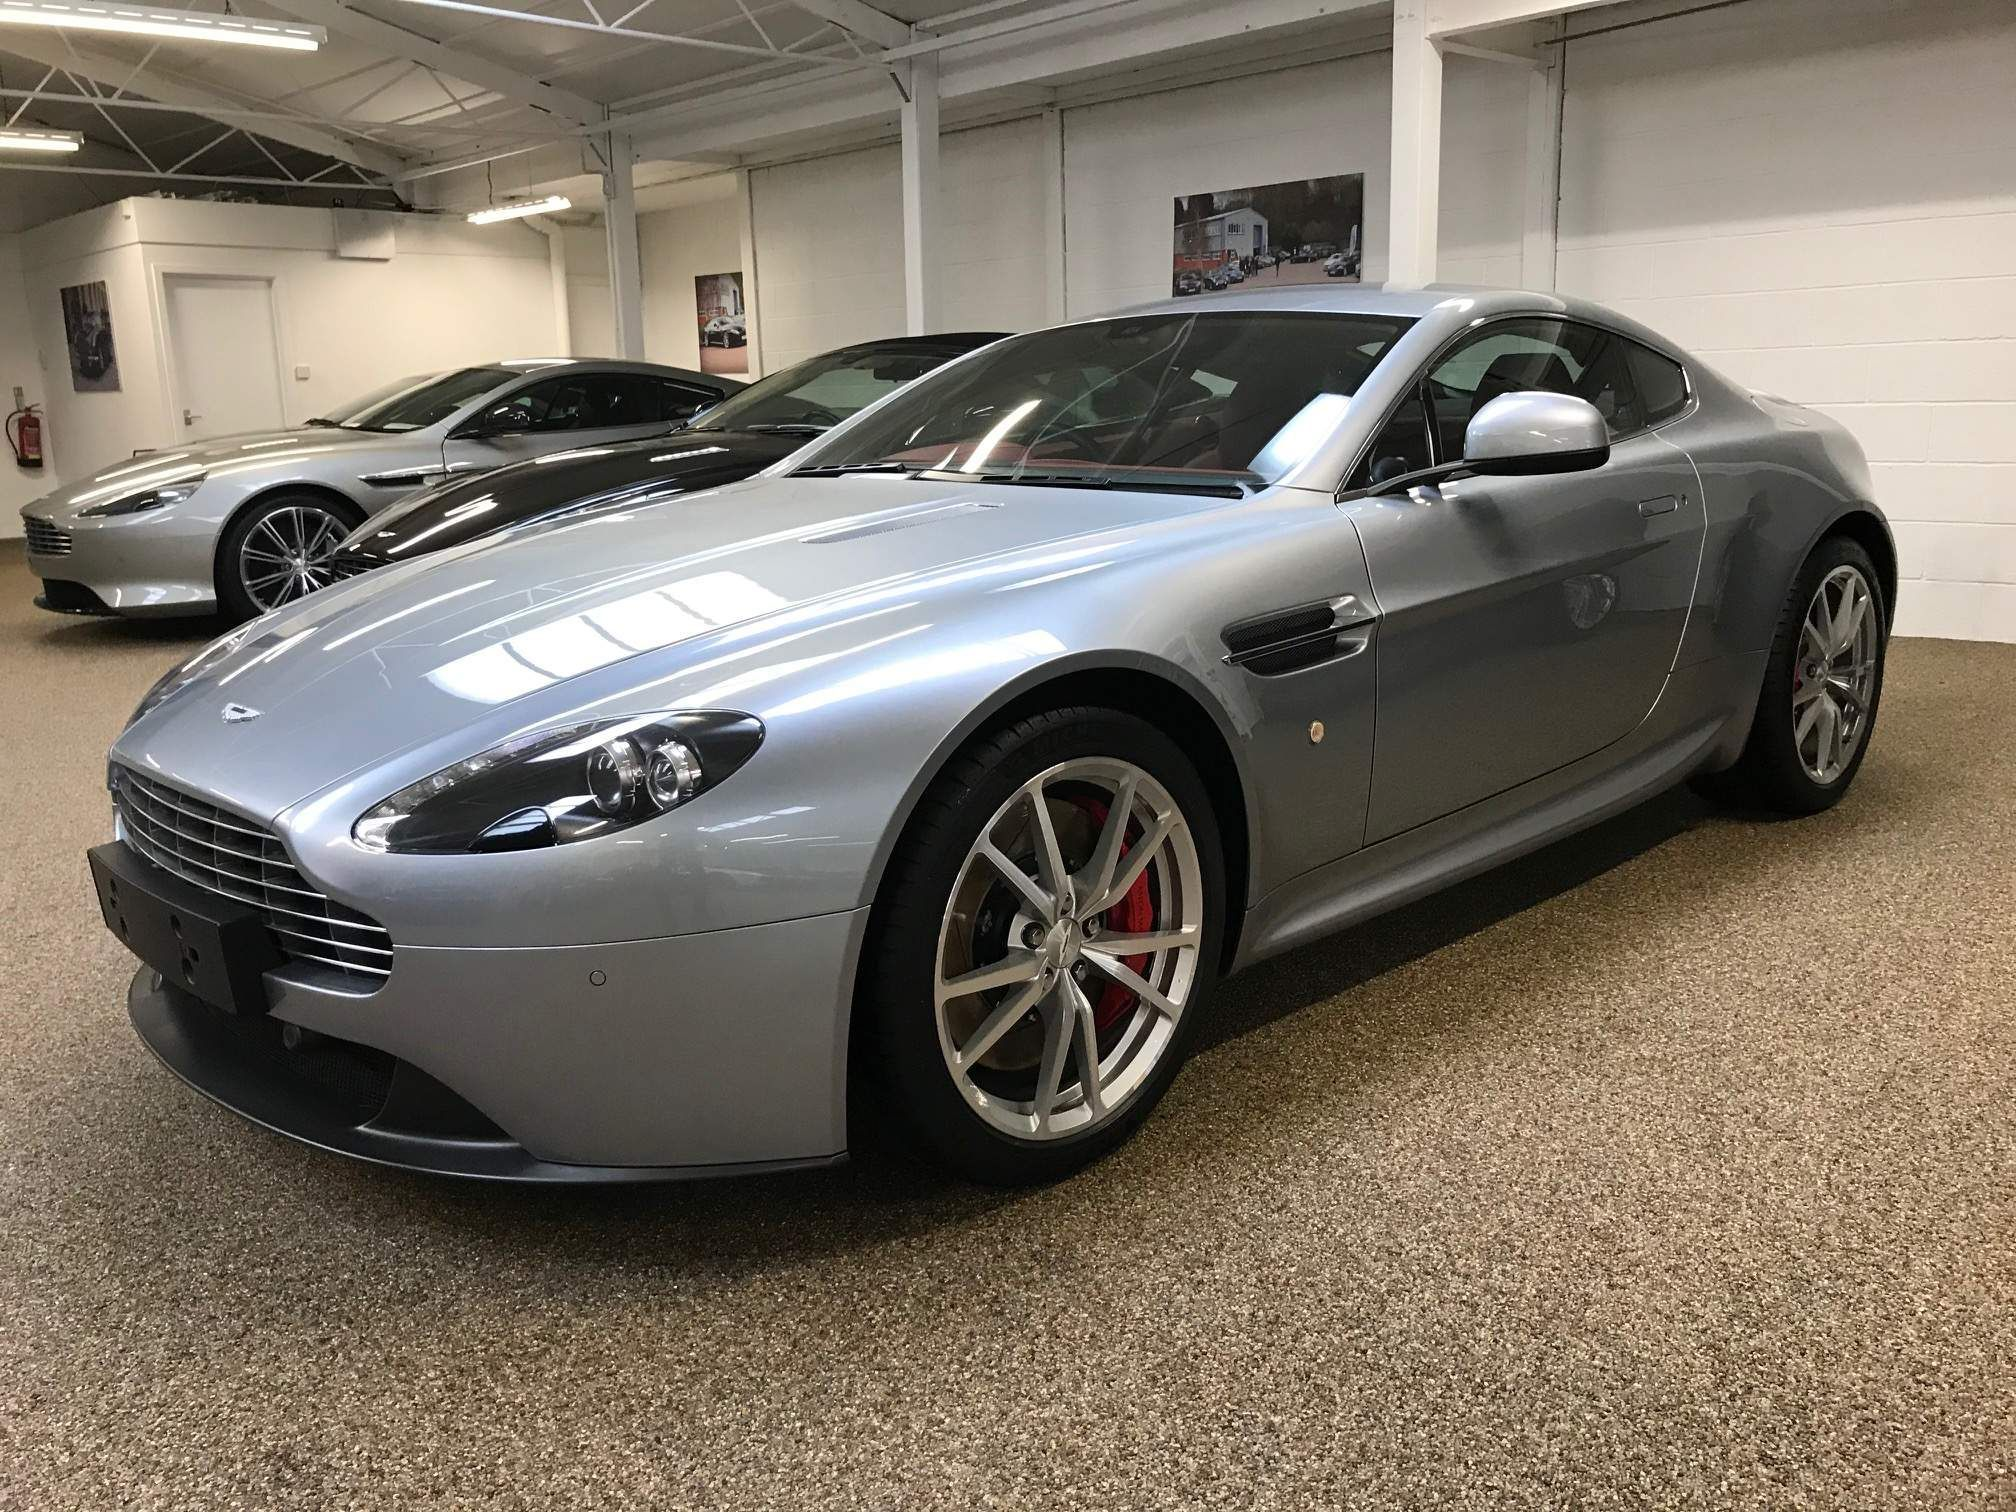 Silver Aston Martin Vantage Used Cars For Sale Autotrader Uk